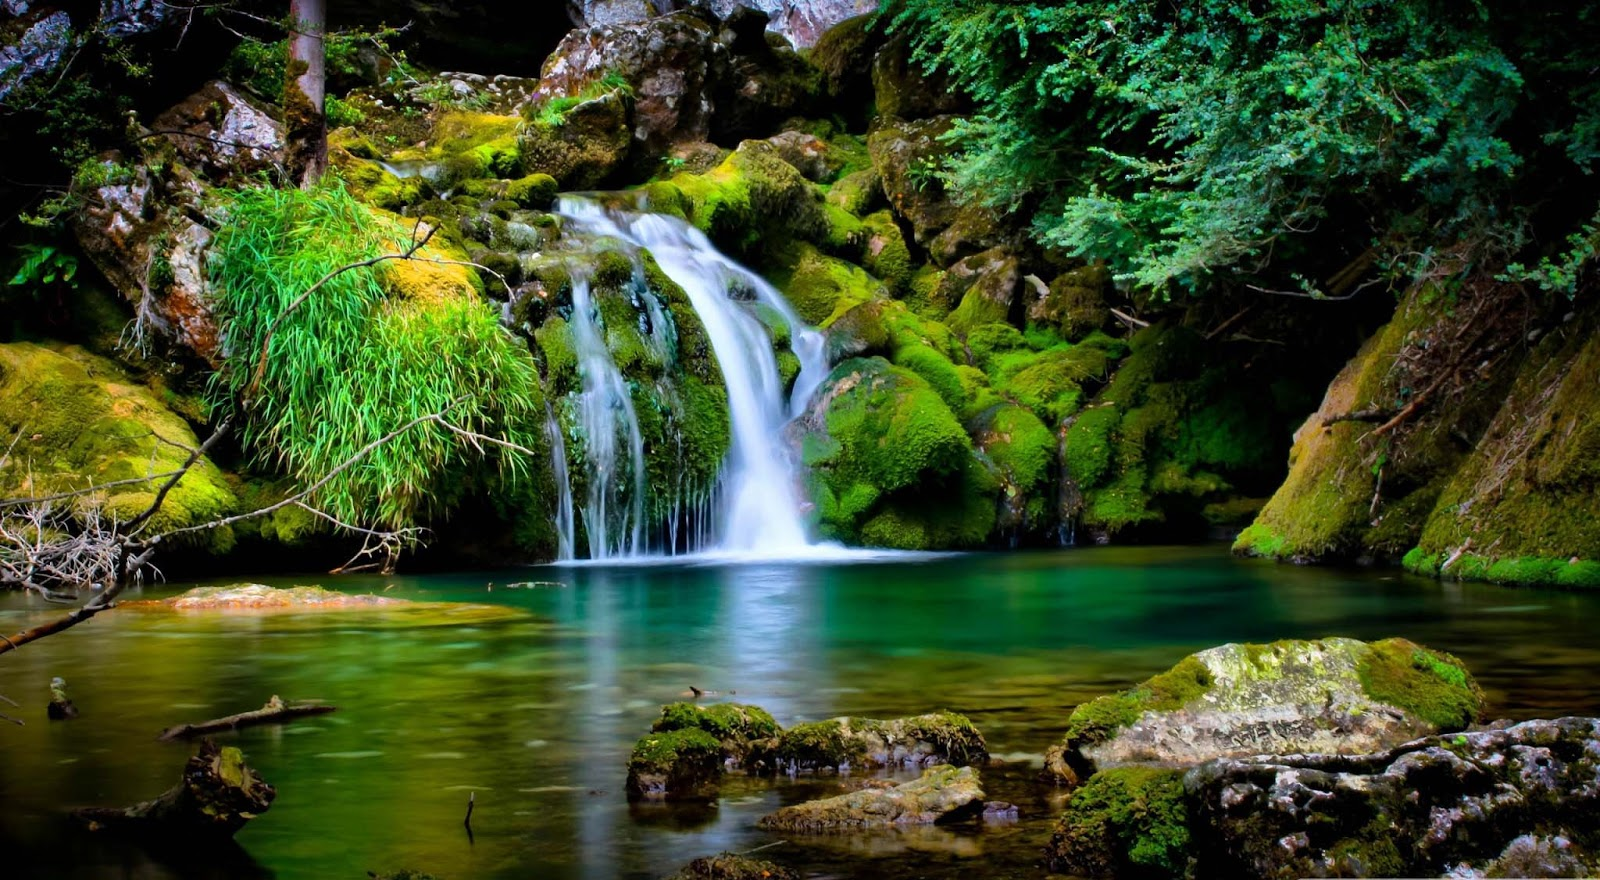 nature wallpapers mp3 download: Care-we: Waterfall Scenery